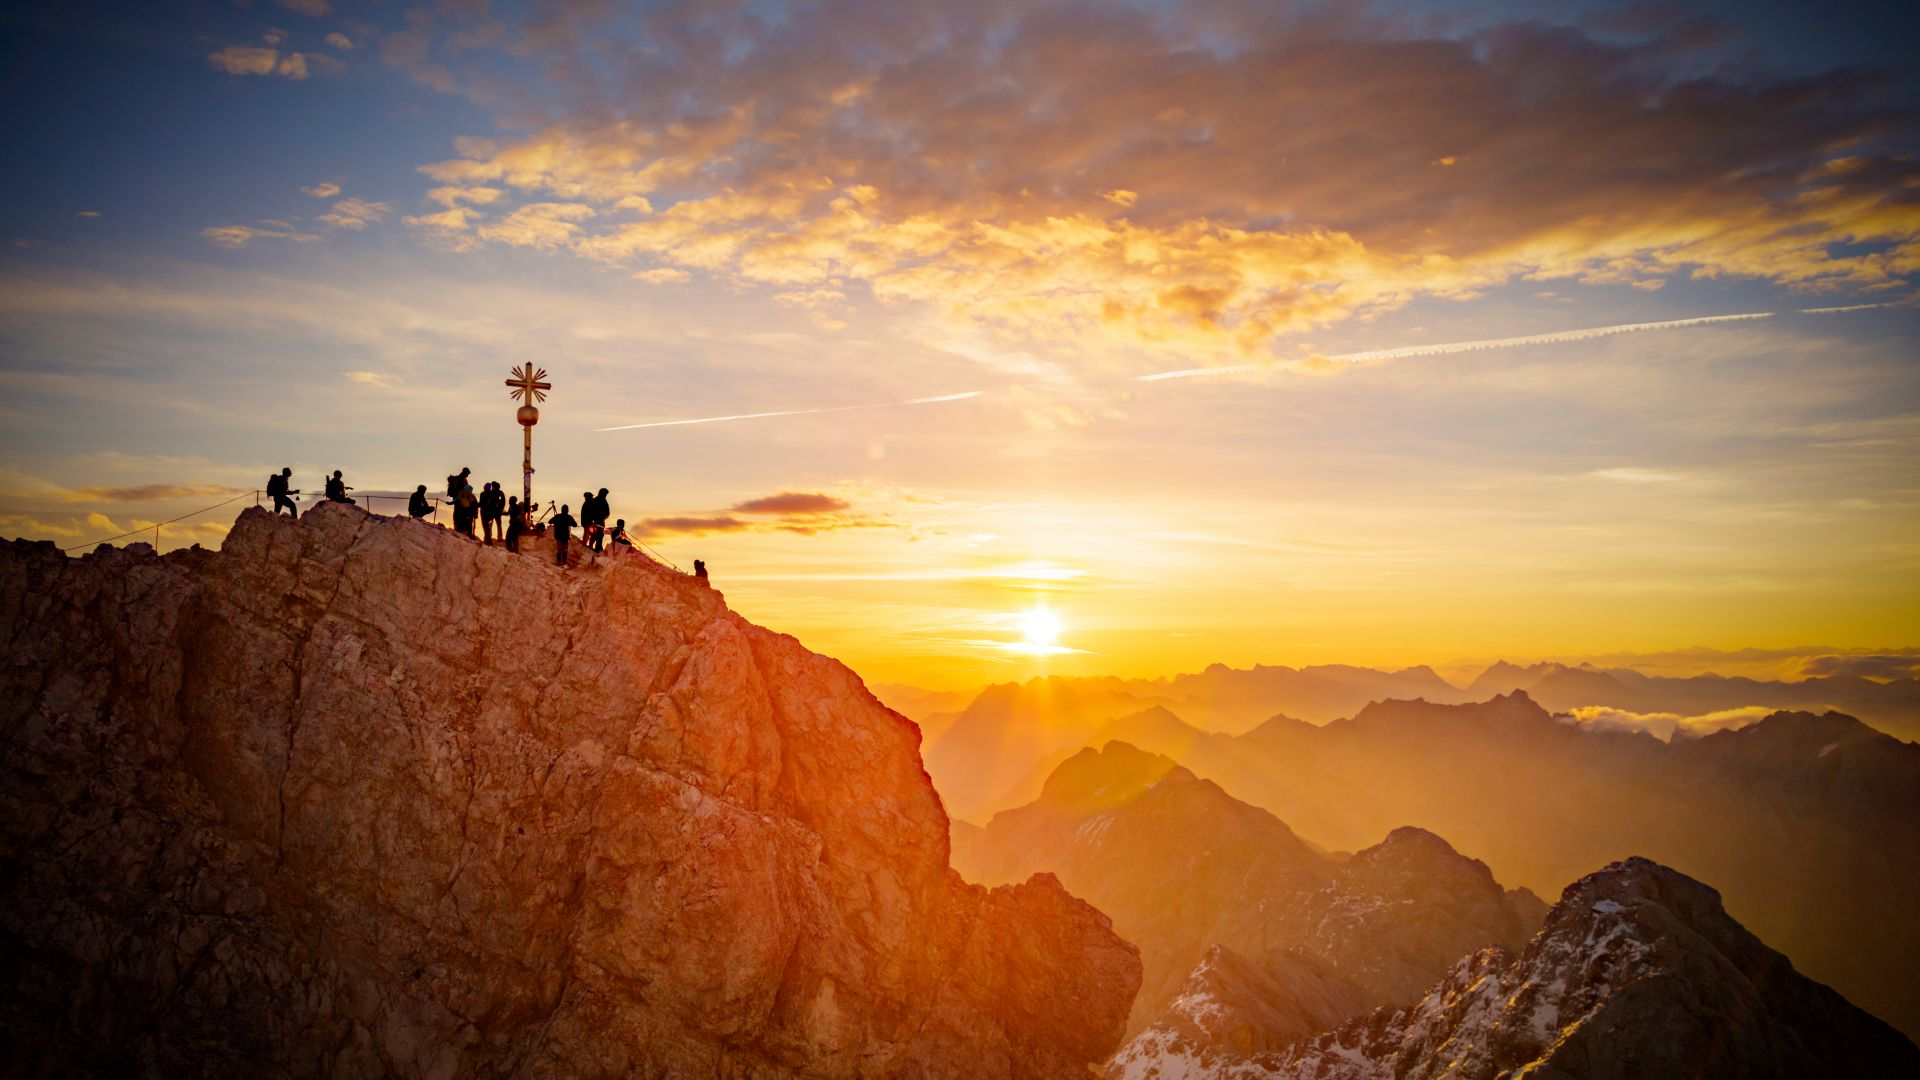 Zugspitze: summit of Mount Zugspitze, Germany's highest mountain in front of the rising sun.